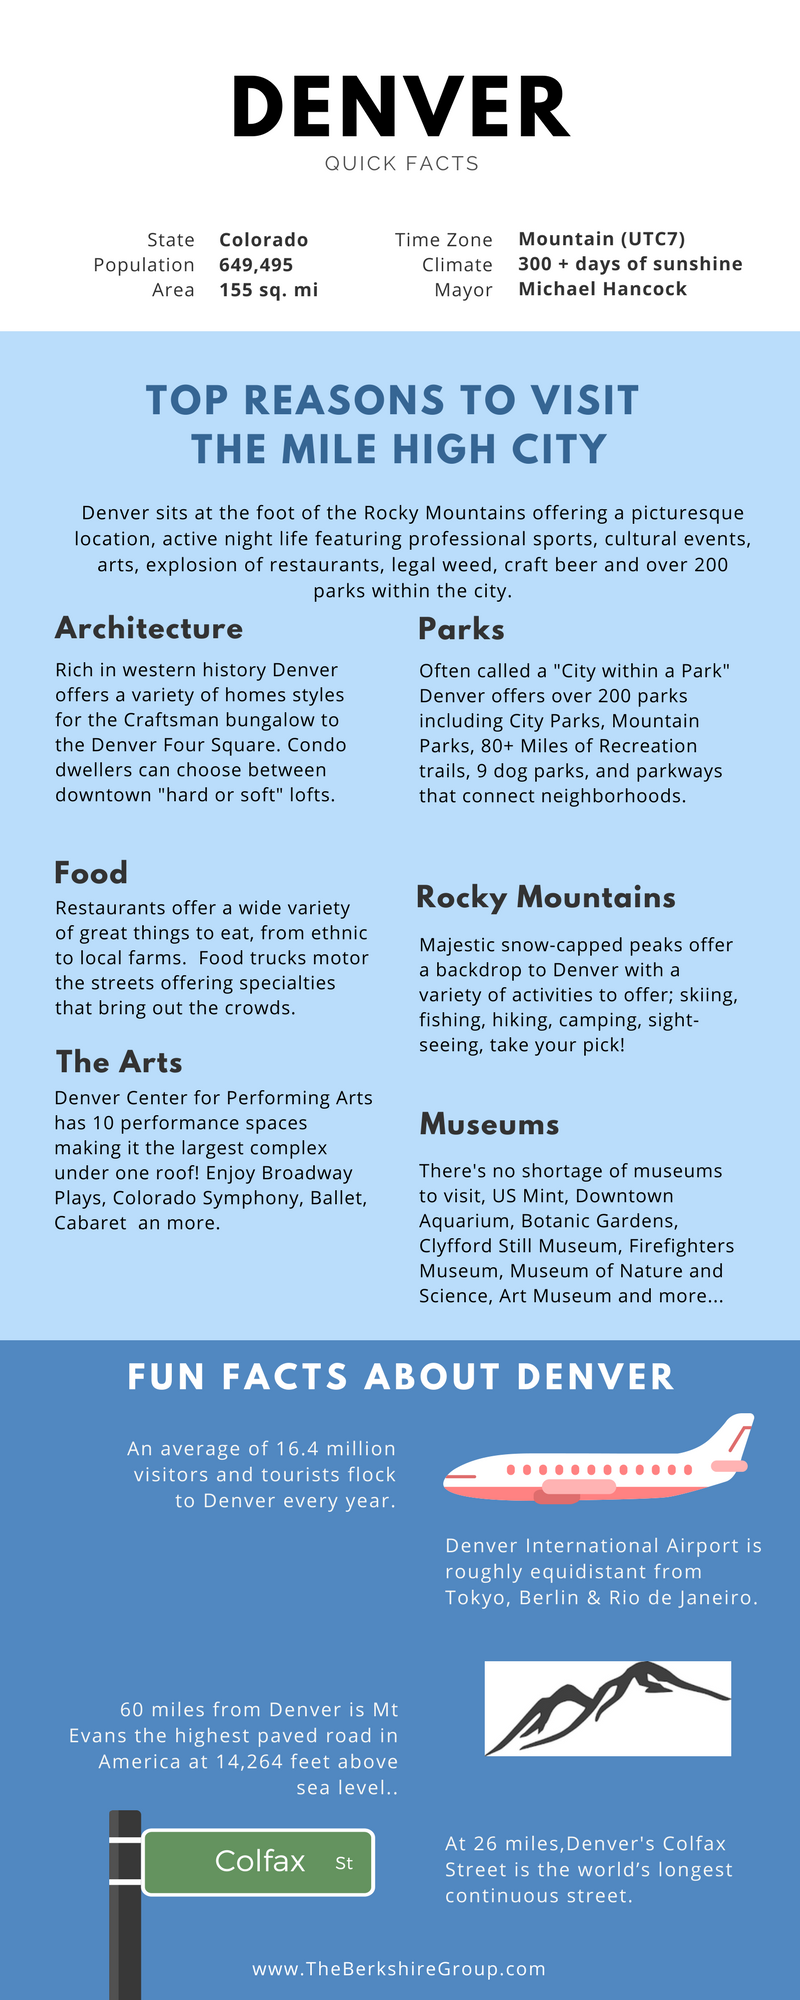 Denver Quick Facts